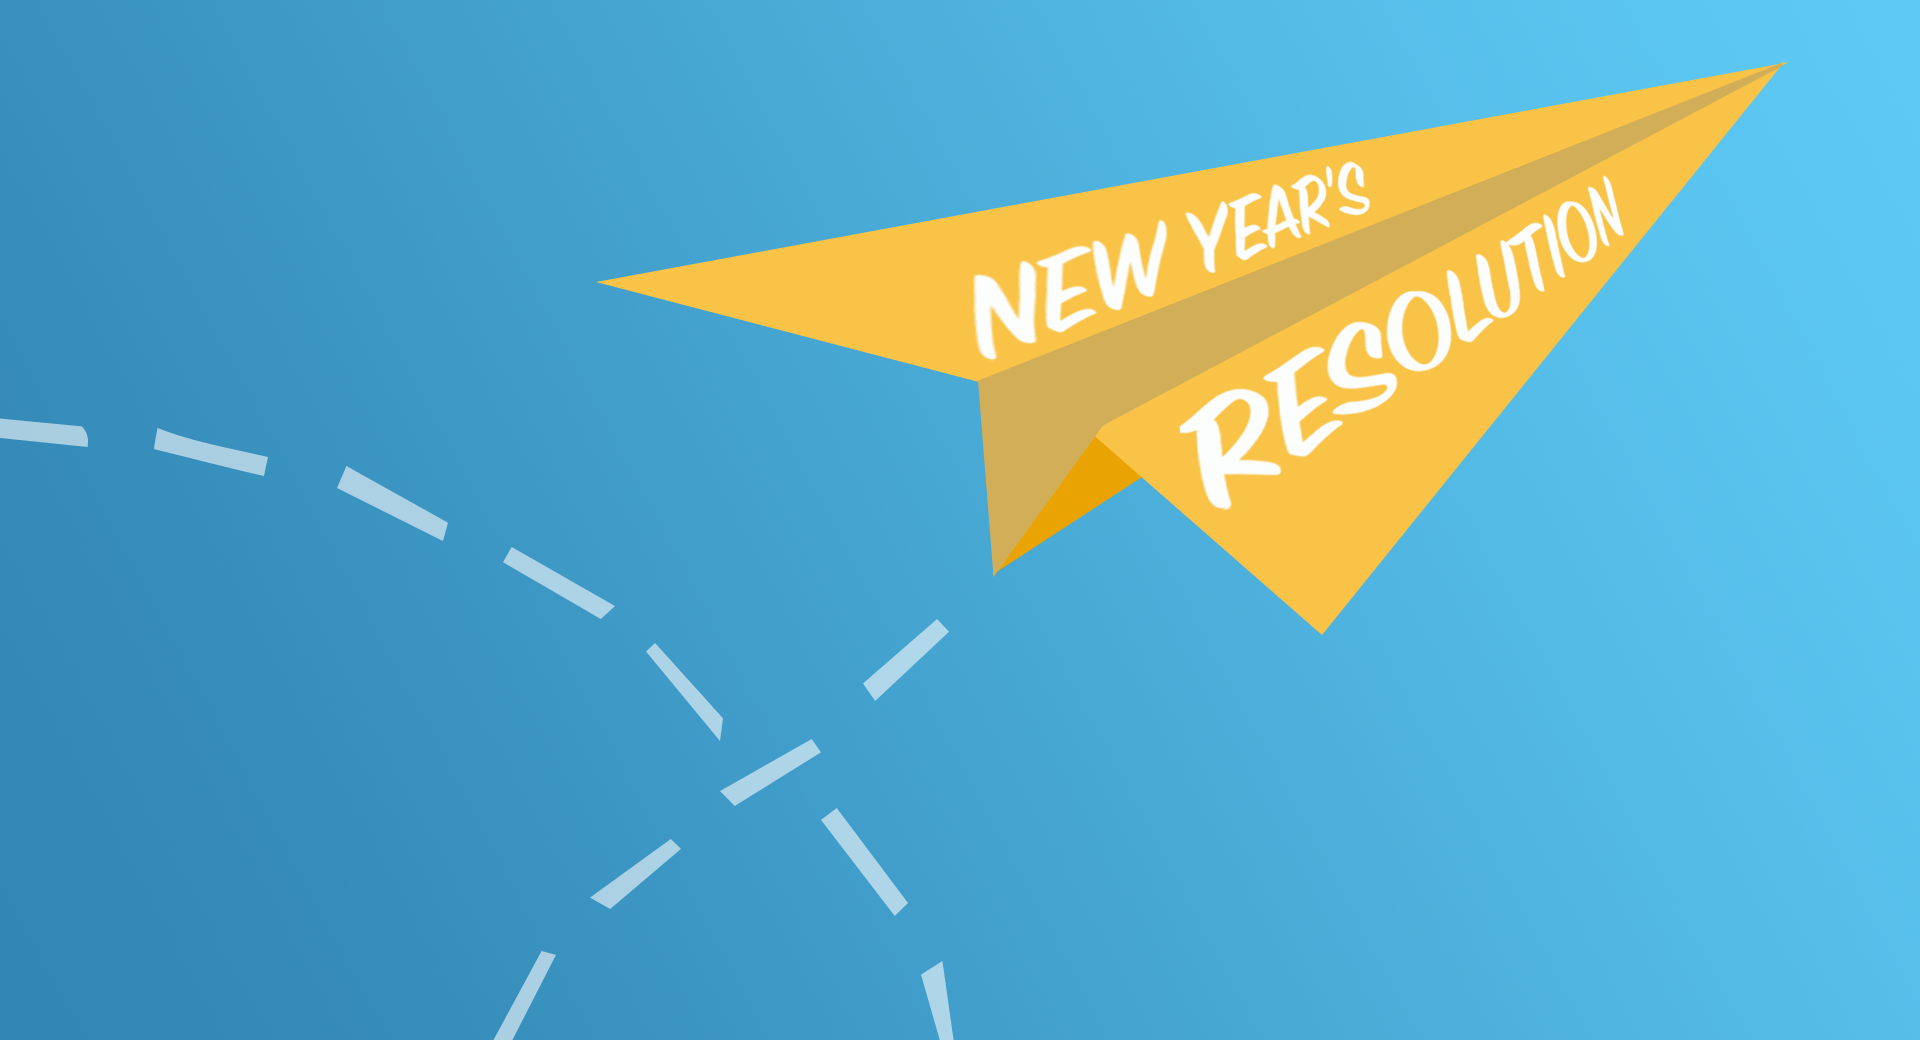 Less Paper, Not Paperless: A New Year's Resolution